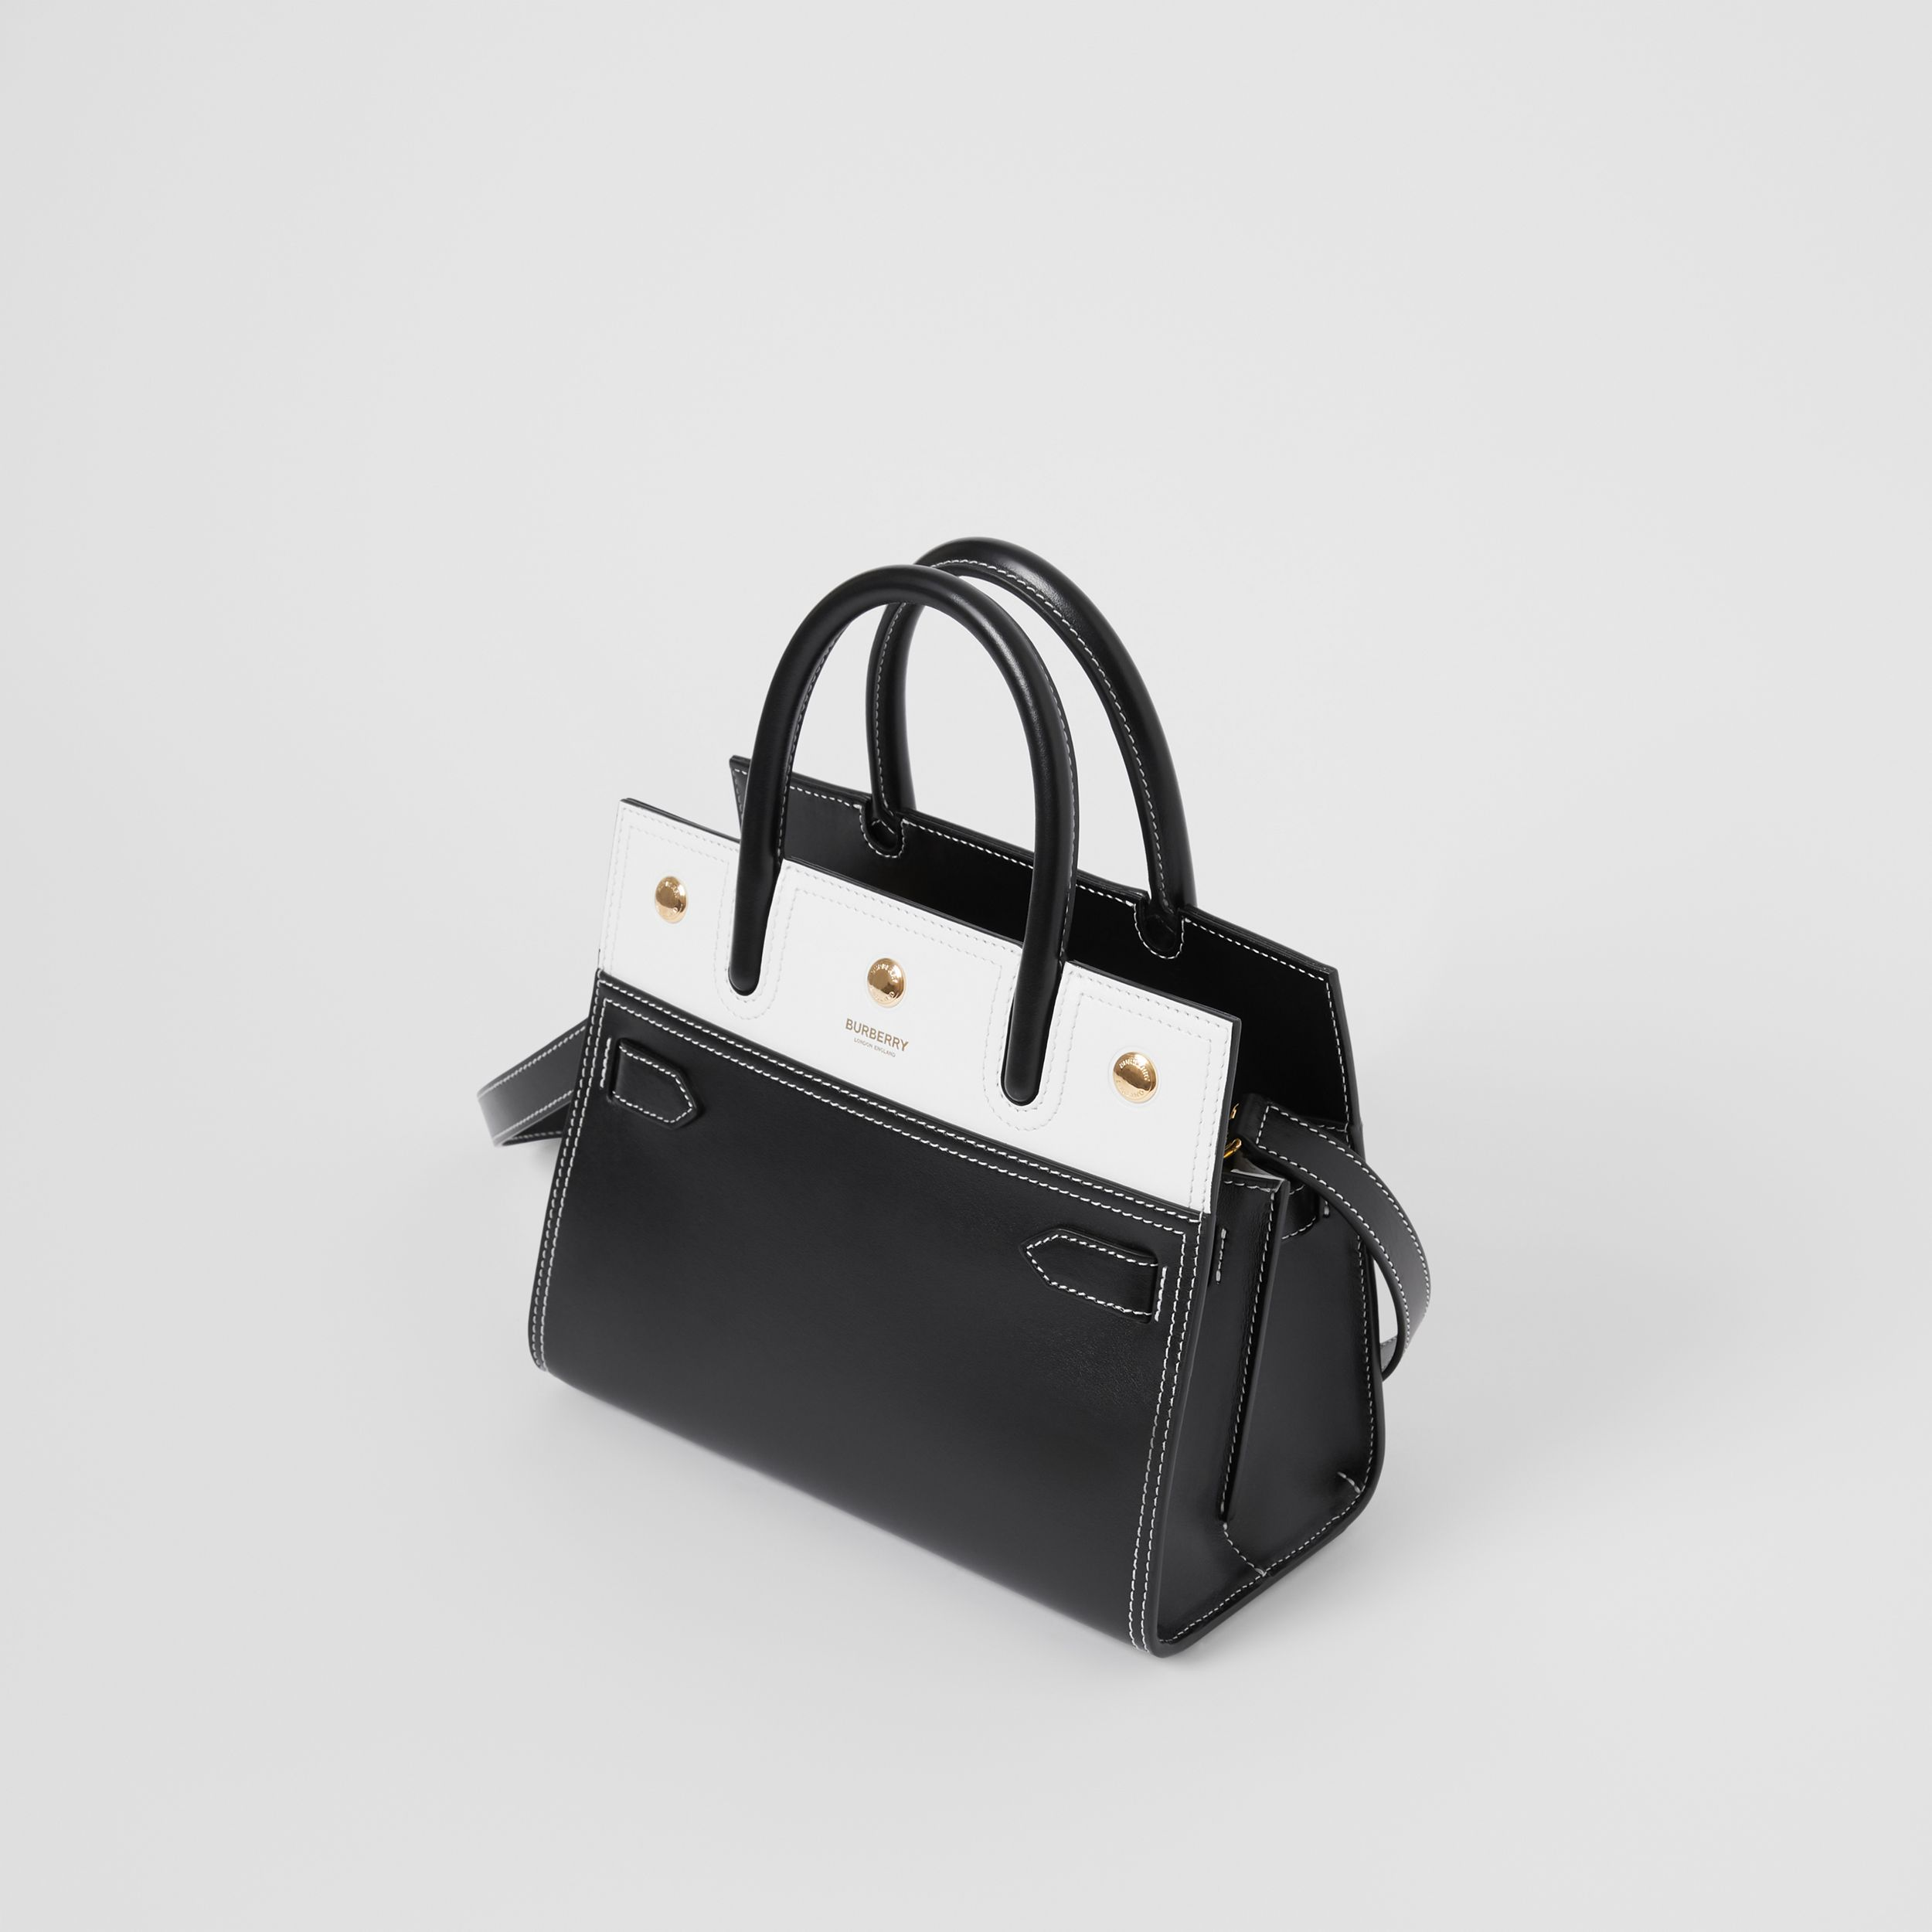 Mini Leather Two-handle Title Bag in Black/white - Women | Burberry Hong Kong S.A.R. - 3